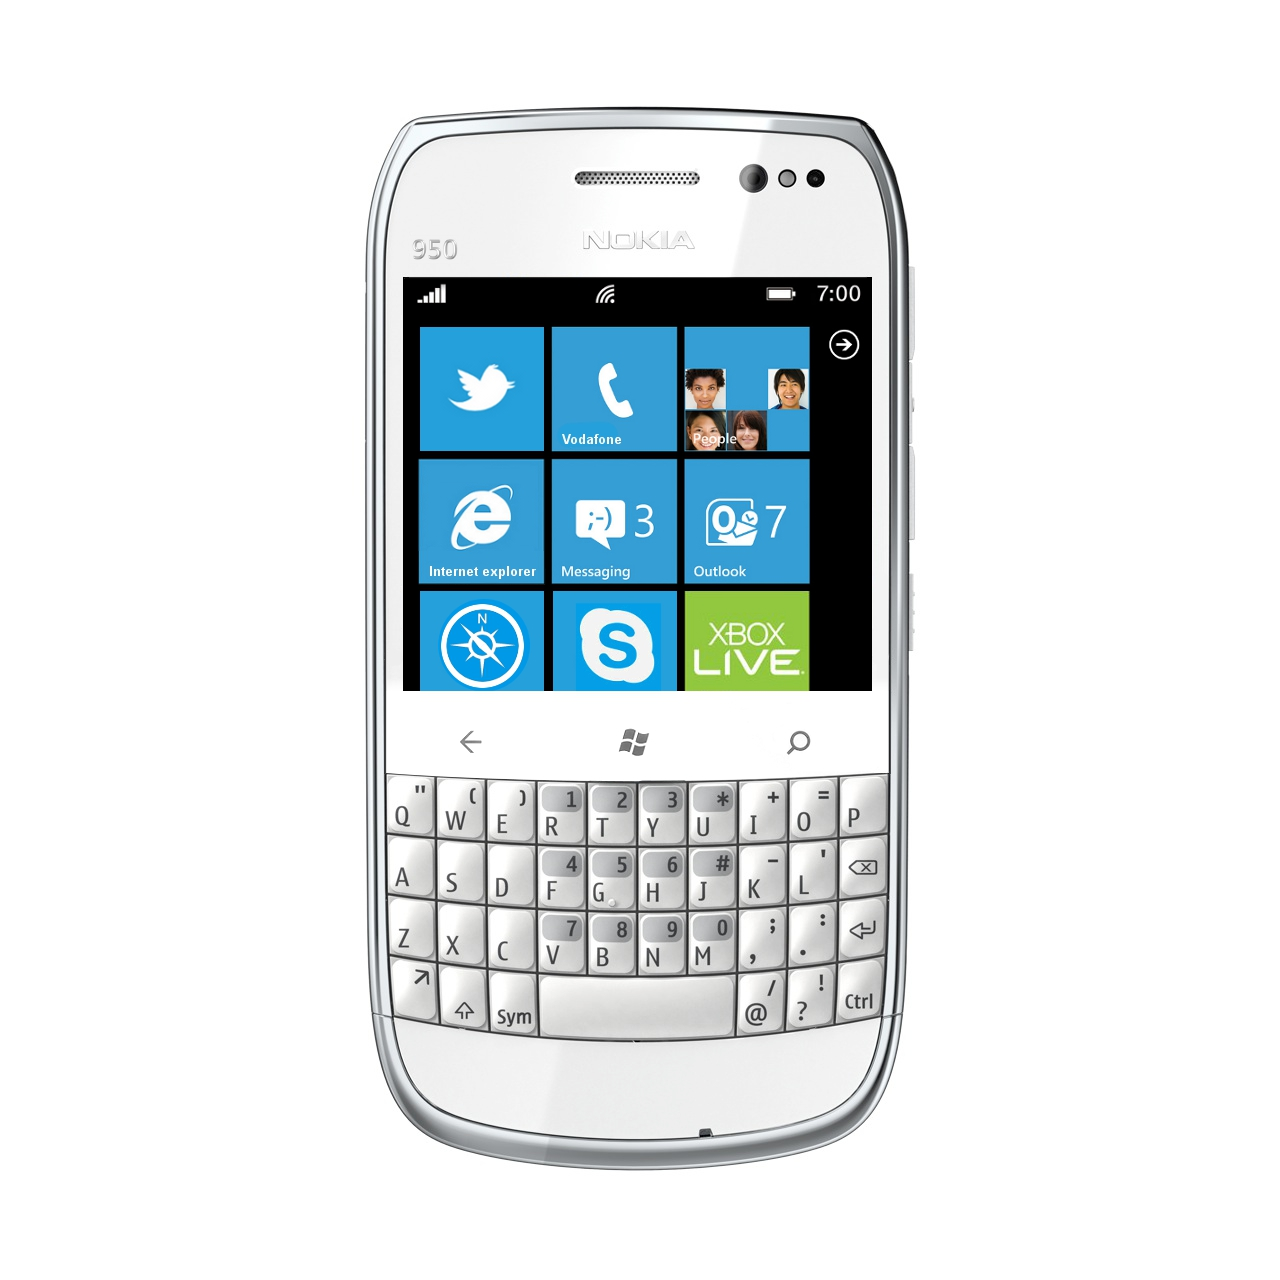 nokia 950 windows phone touch and type e6 design latest in cell phones. Black Bedroom Furniture Sets. Home Design Ideas